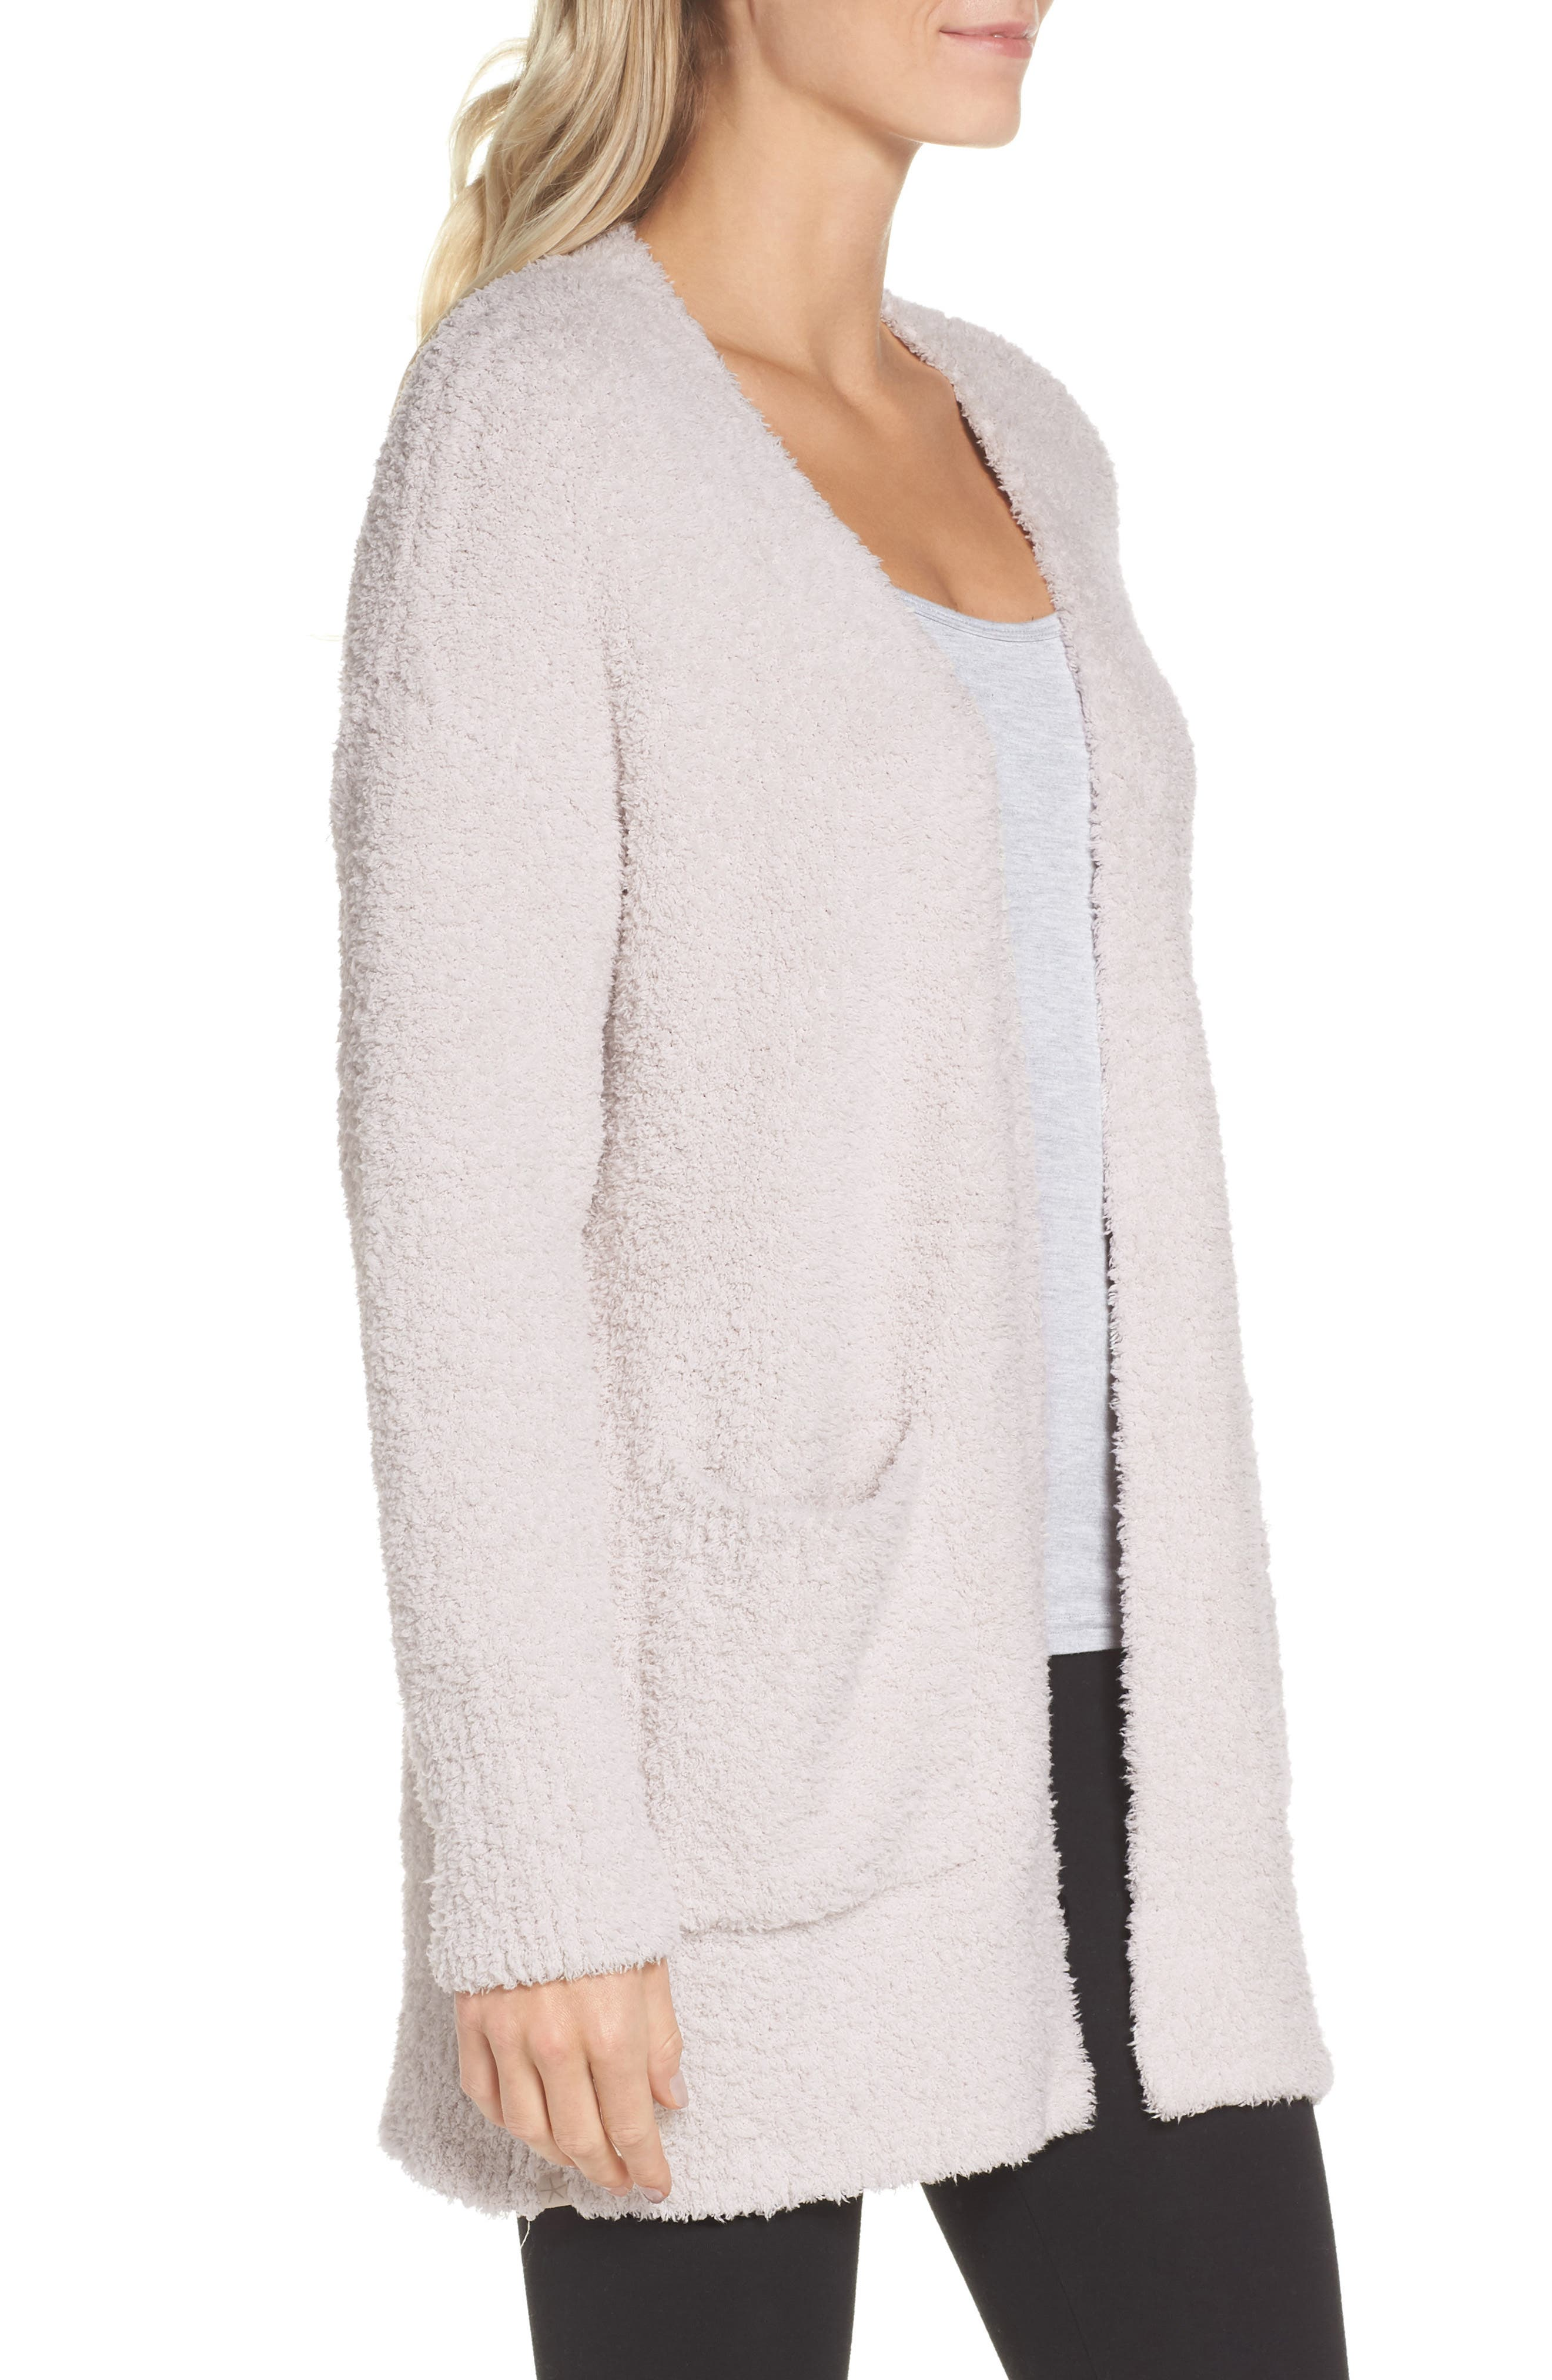 CozyChic<sup>®</sup> Cardigan,                             Alternate thumbnail 3, color,                             ALMOND